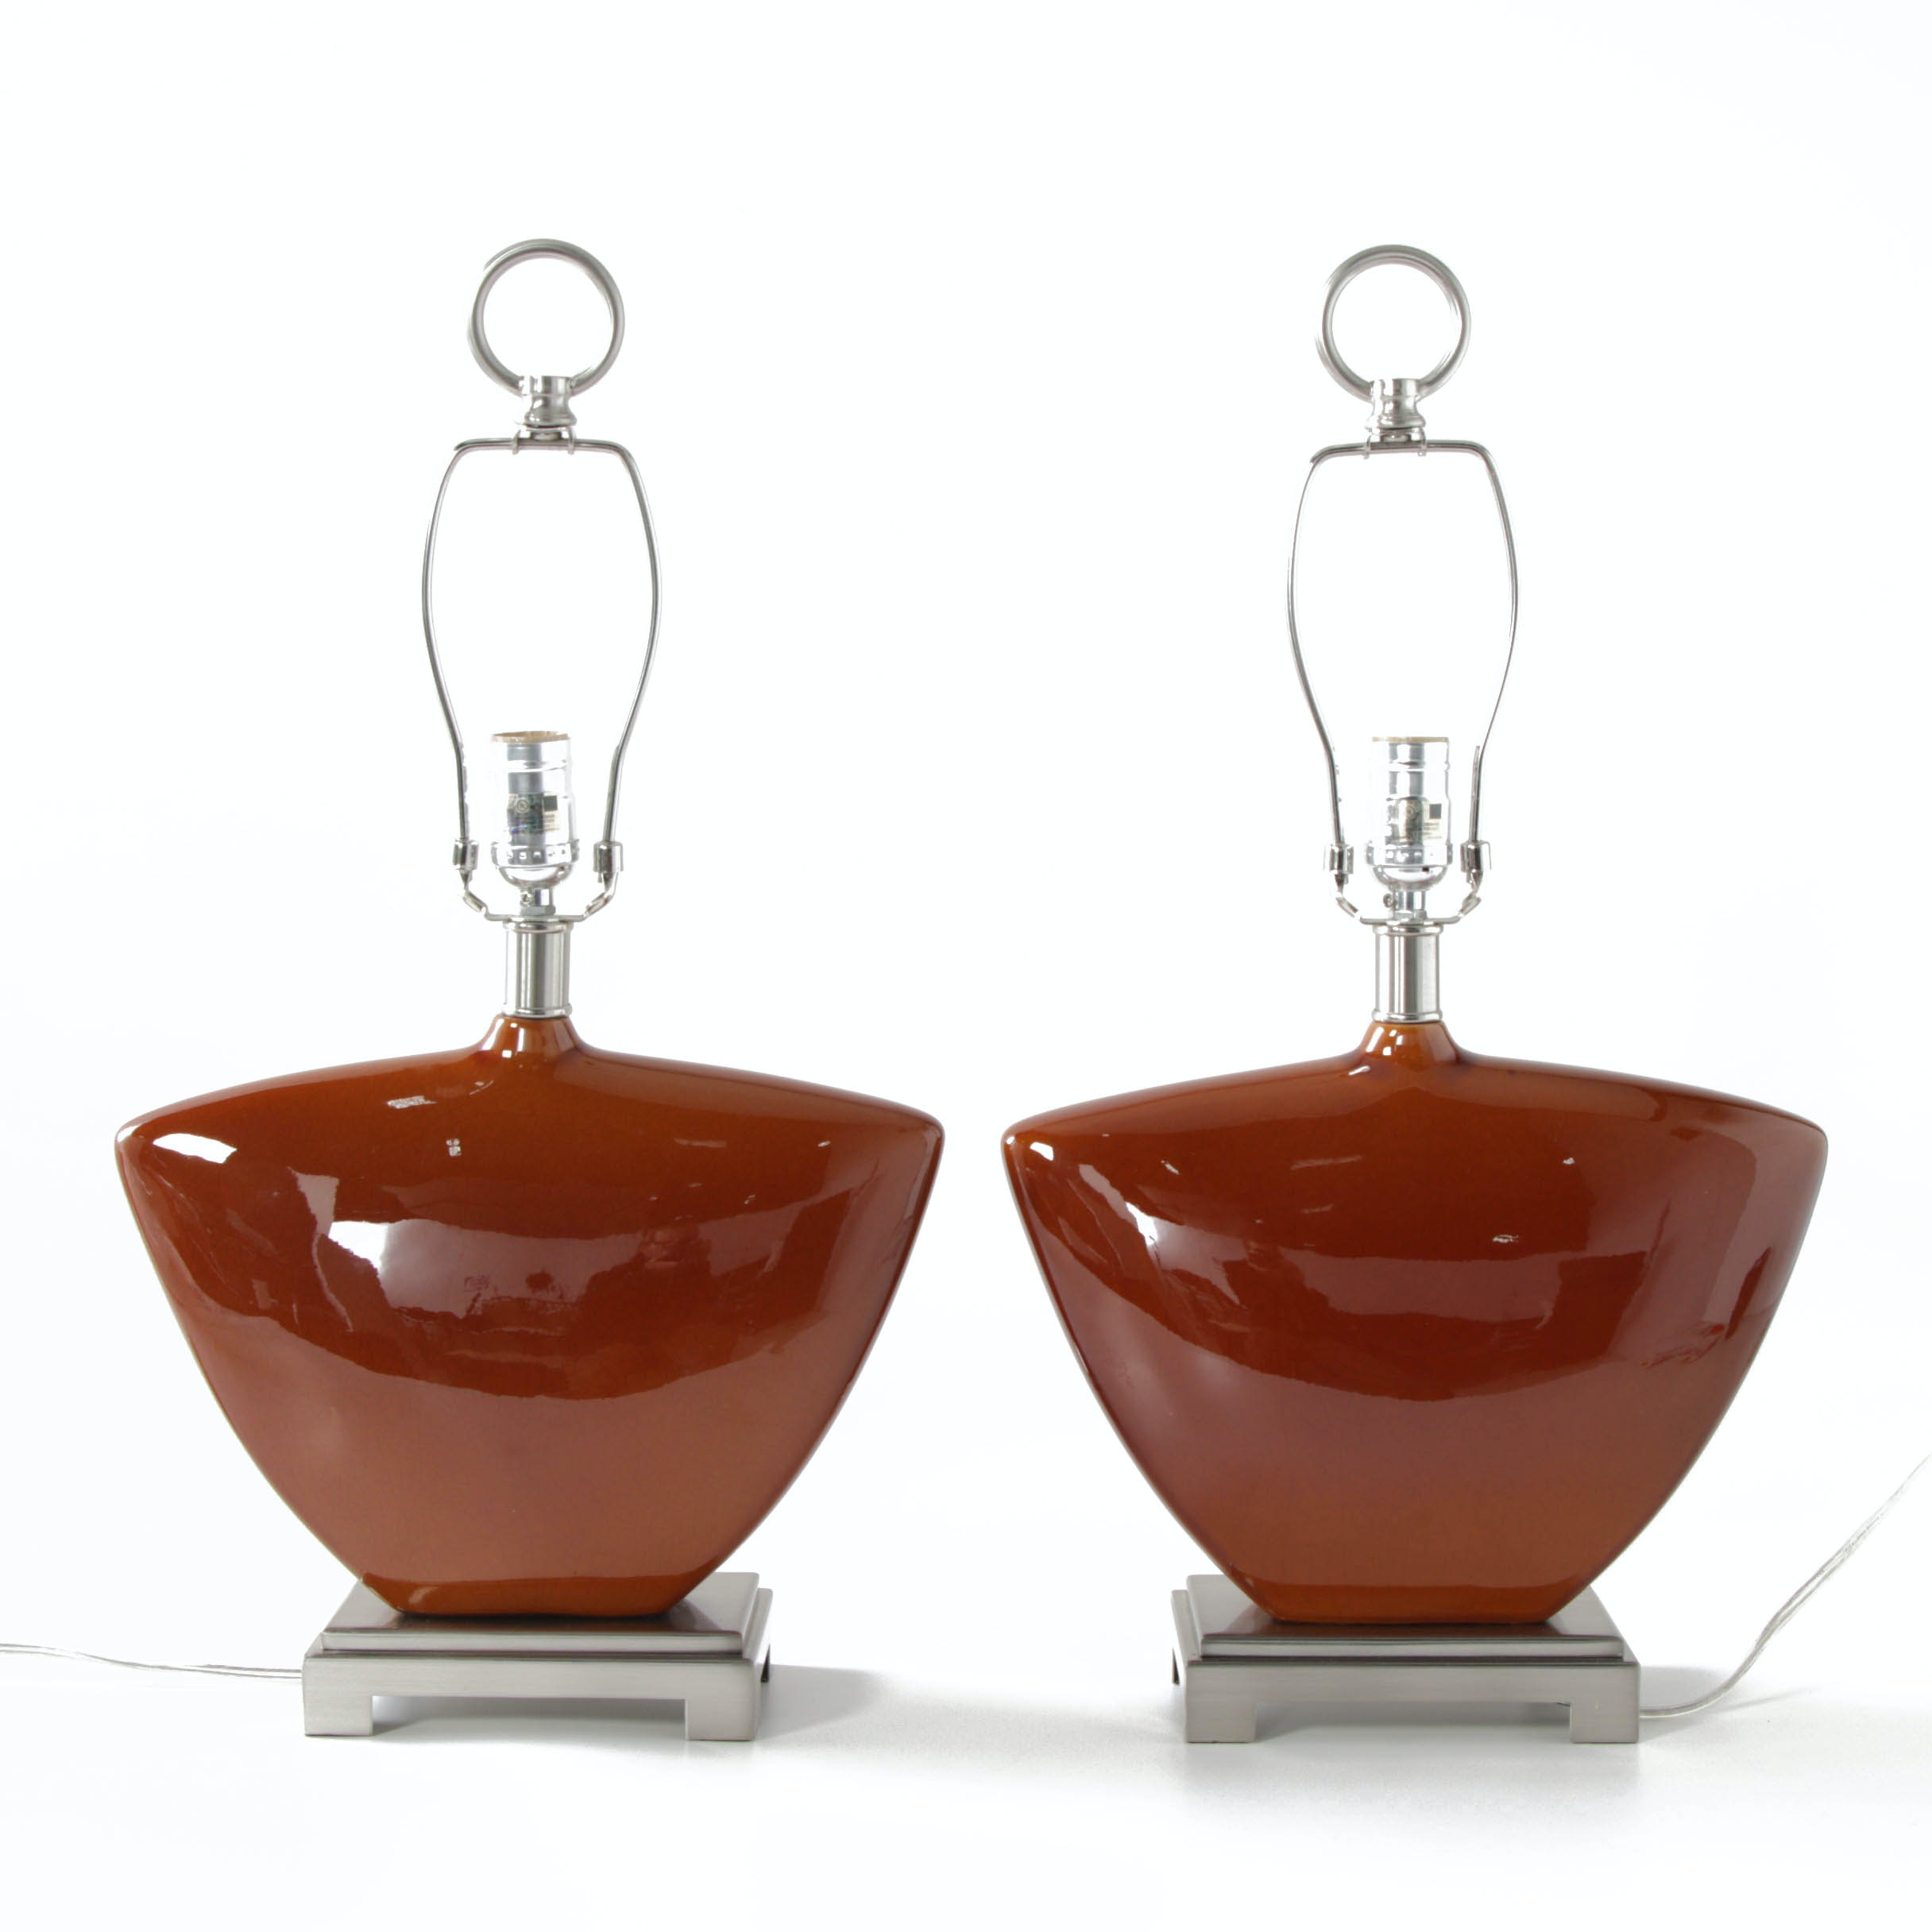 Modern Russet Crackle Glazed Ceramic Table Lamps with Brushed Finished Bases